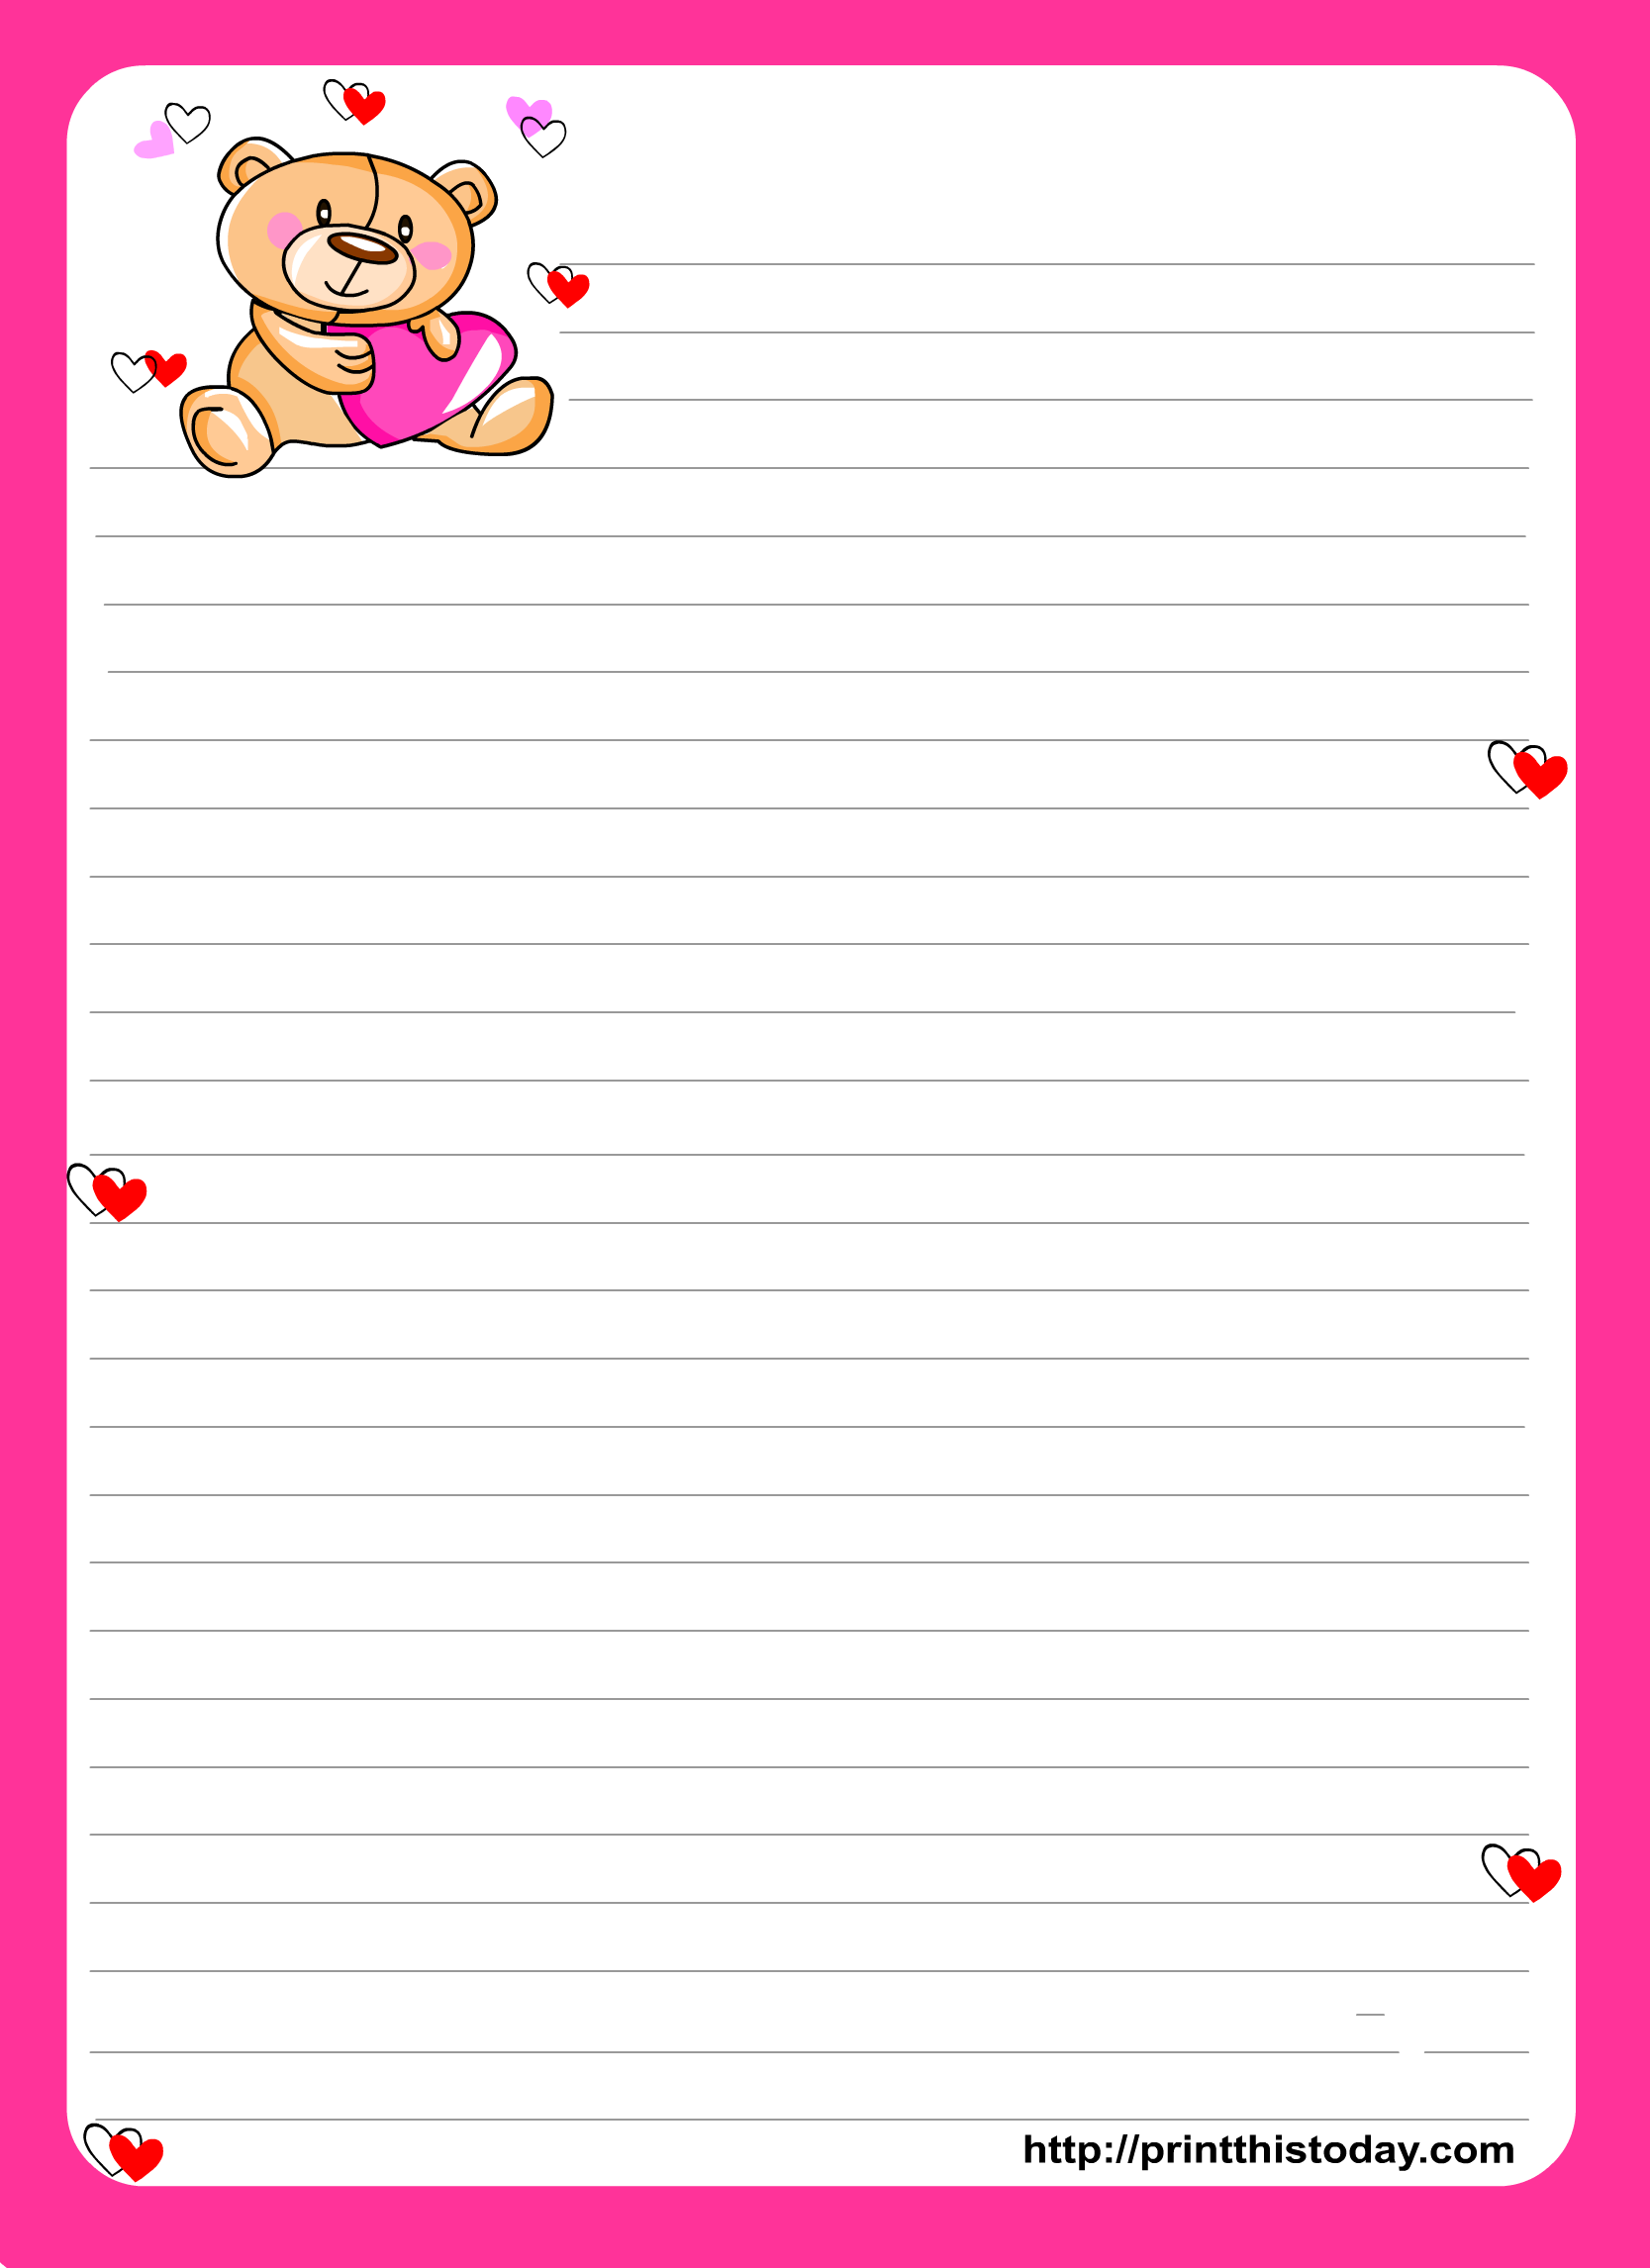 printable lined paper for writing letters